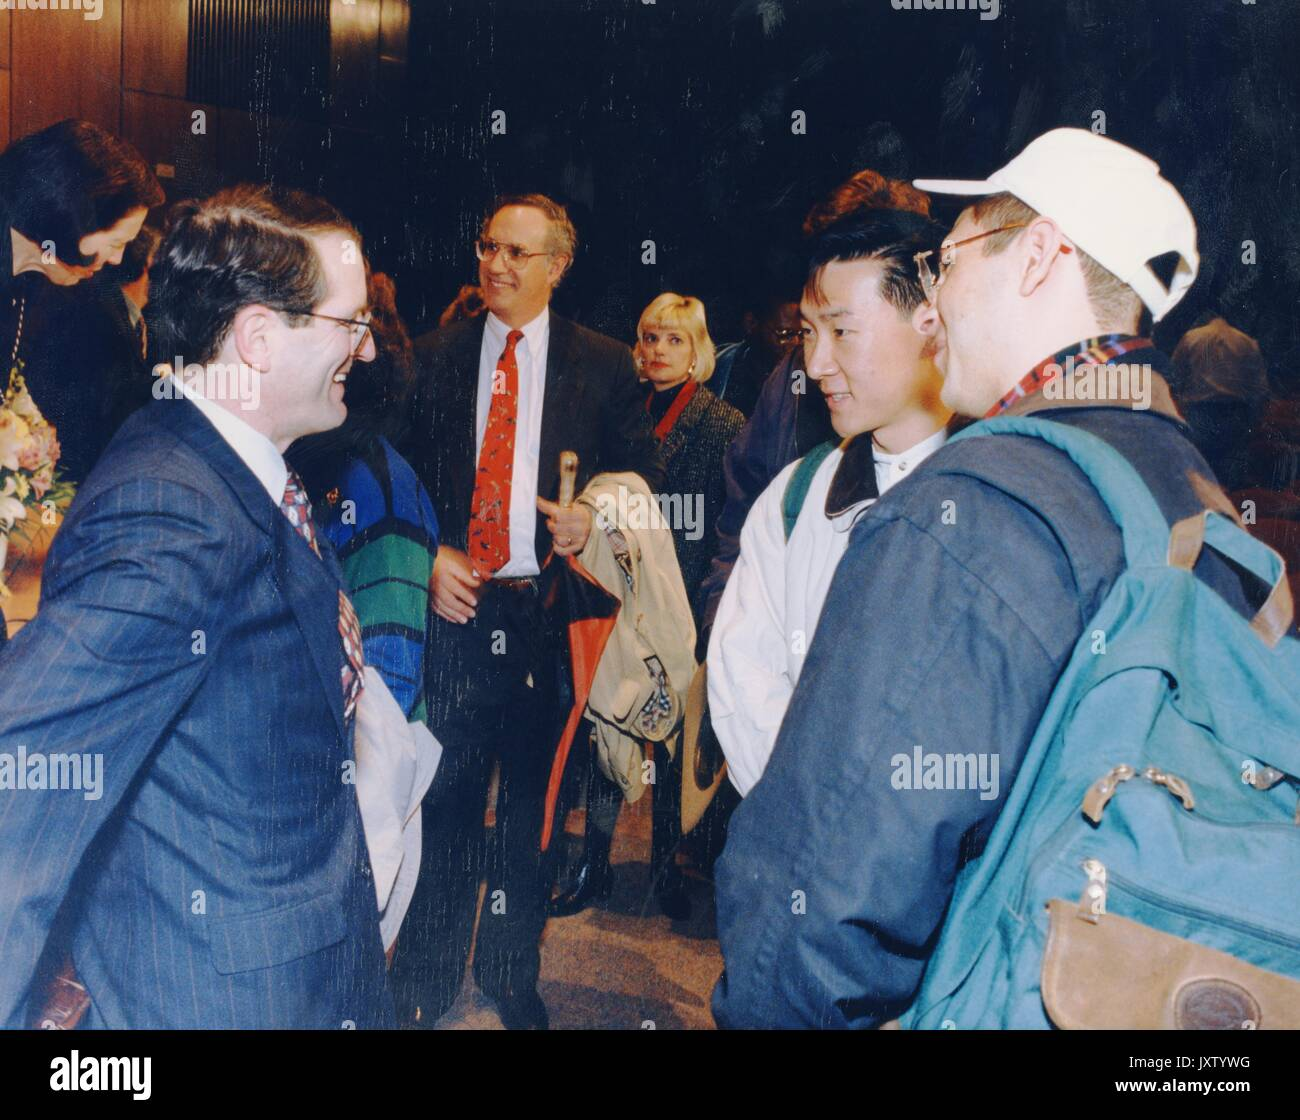 William Ralph Brody, Chatting with students after the announcement of Brody as president-elect, 1996. - Stock Image